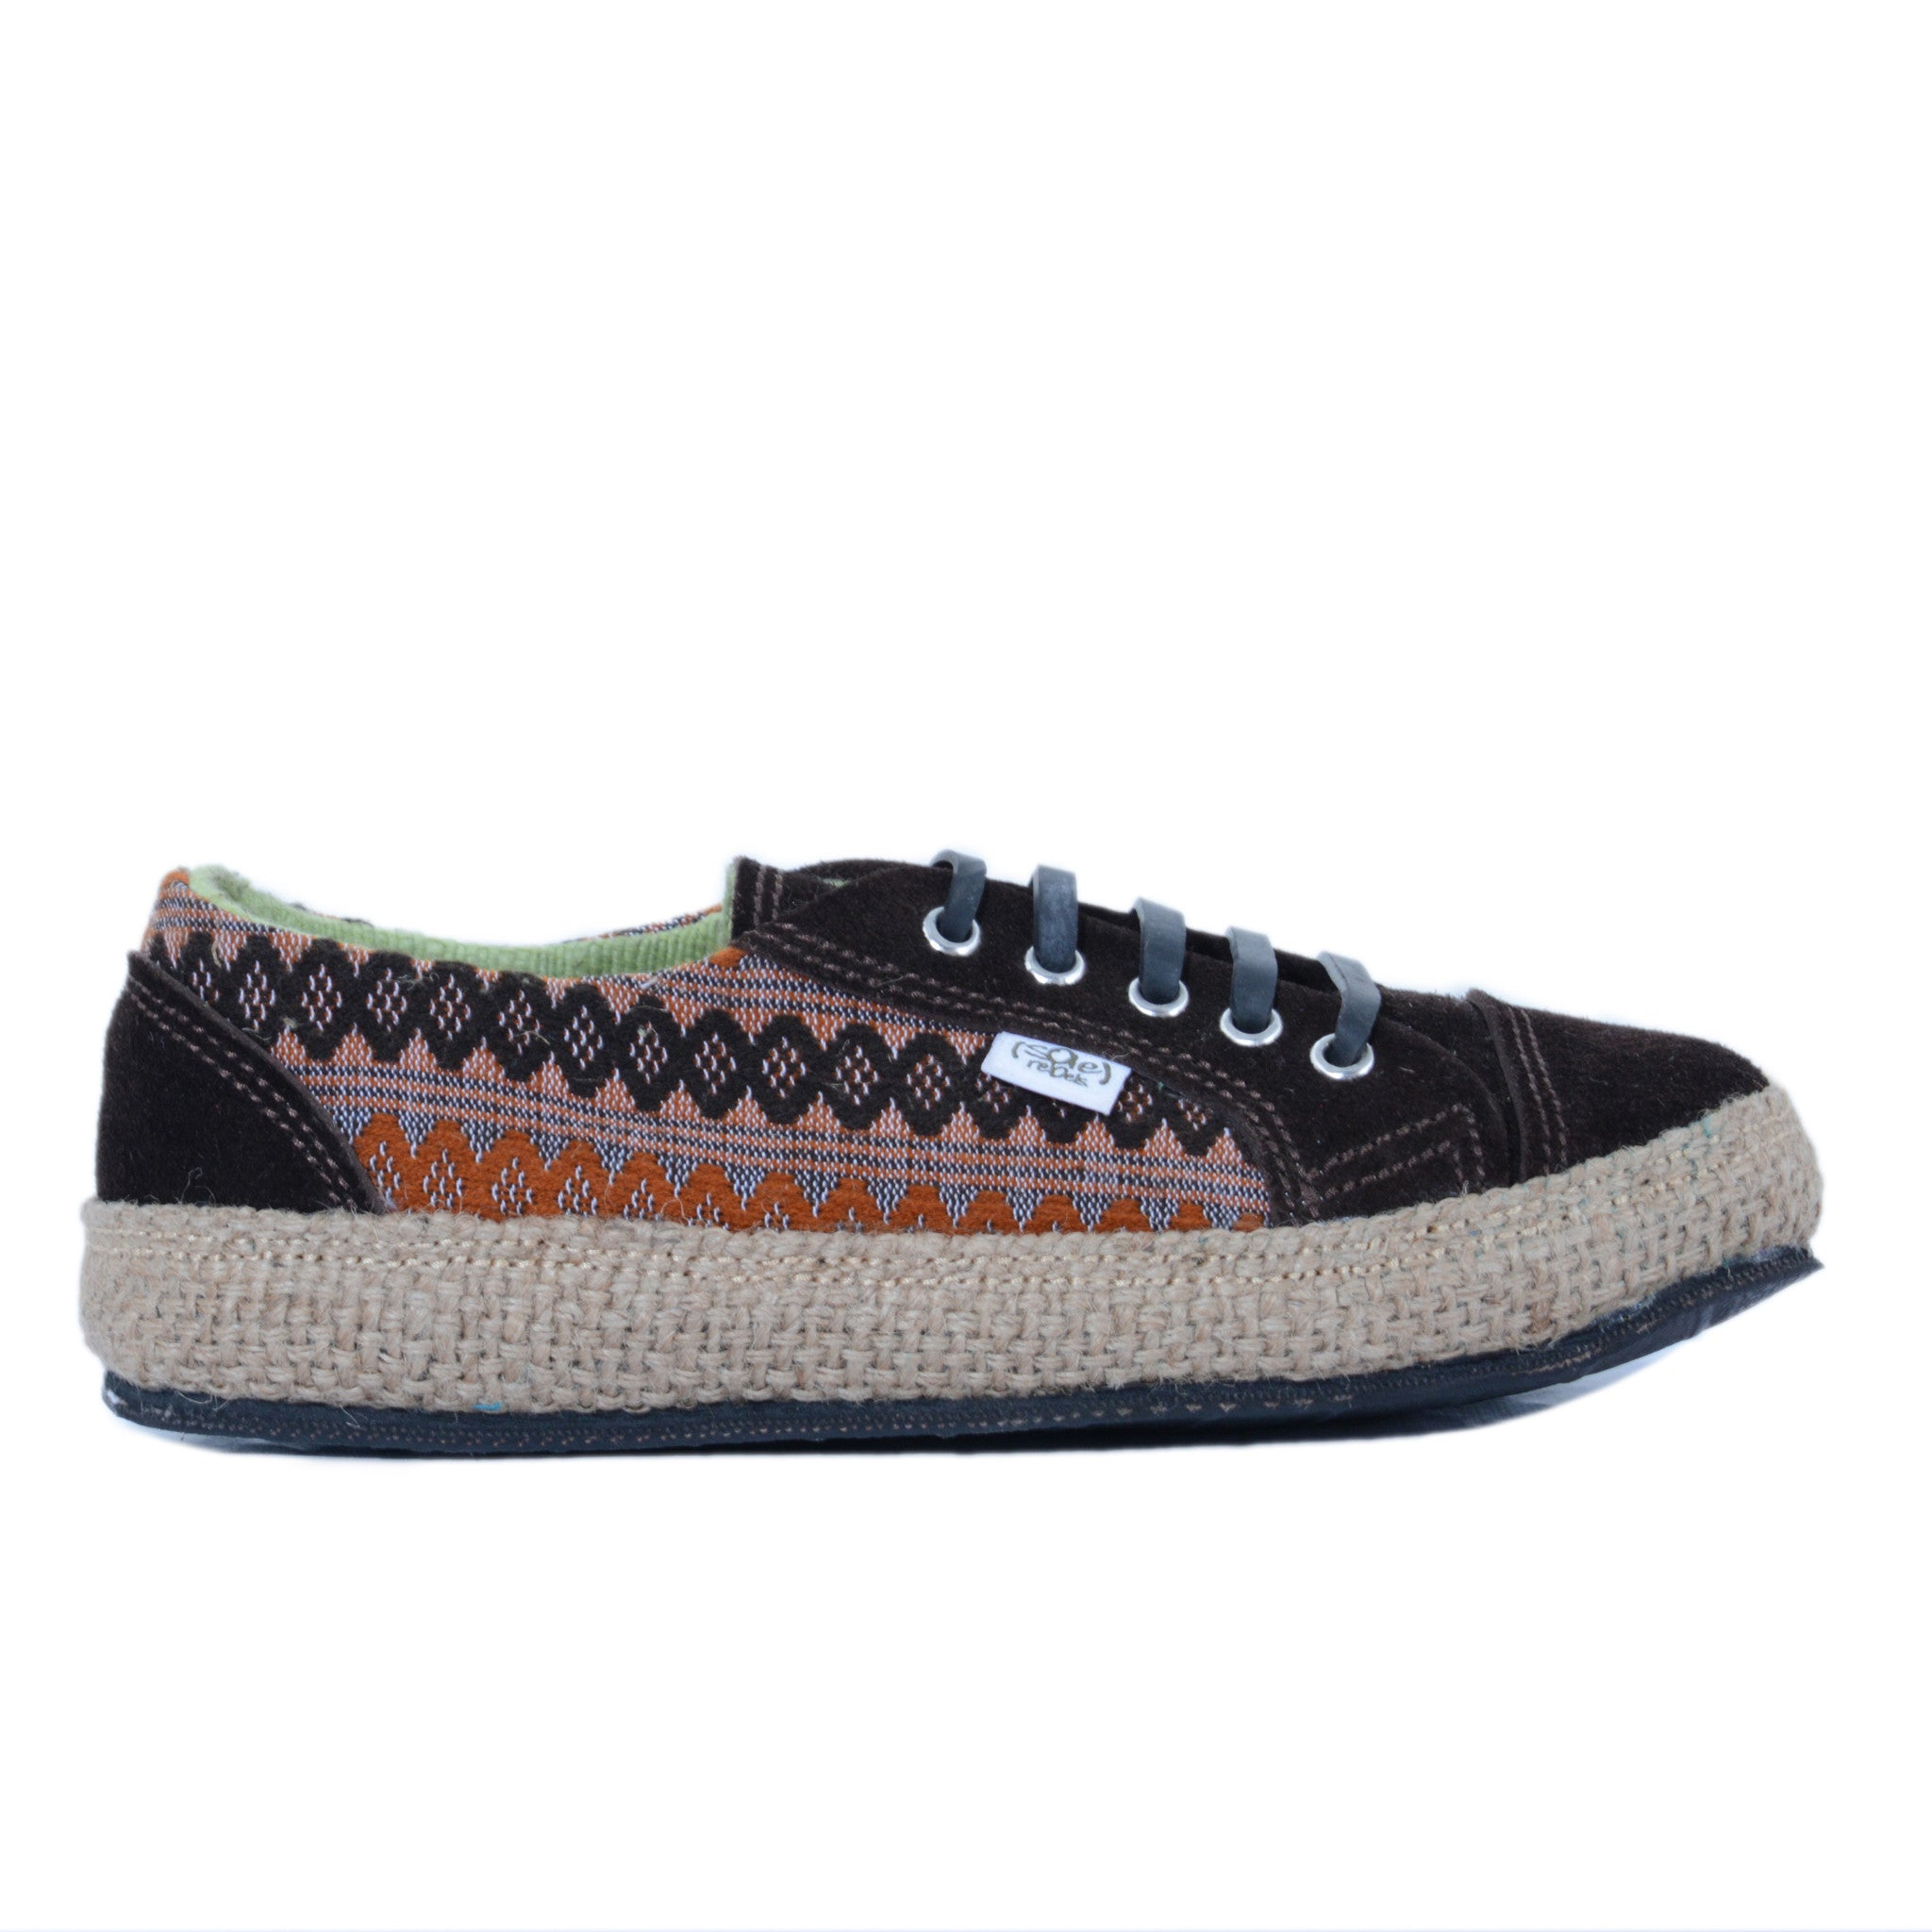 solerebels Brown urban runner kBa abp edition Lace-Ups